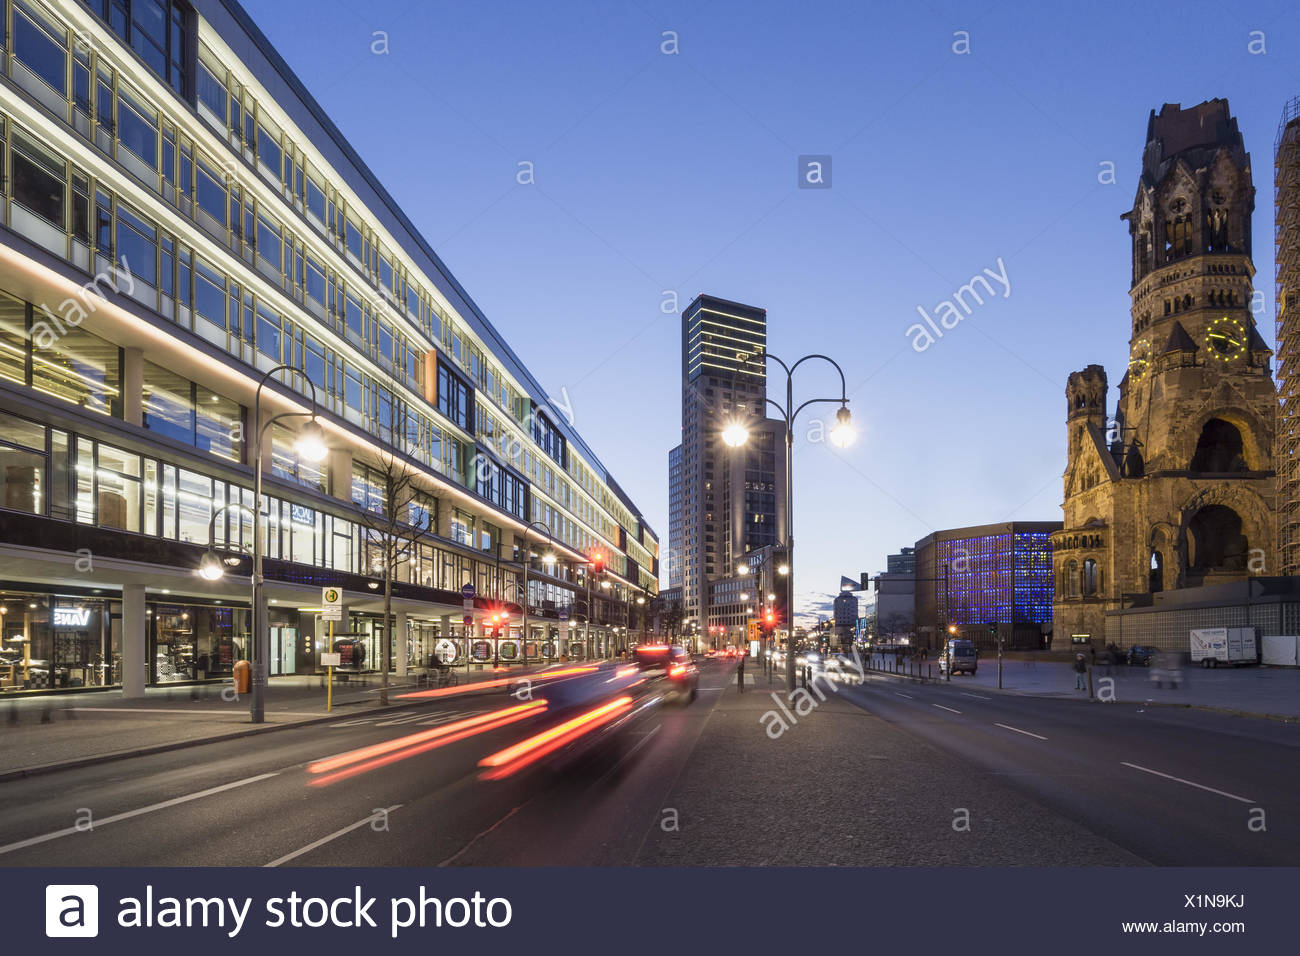 Bikini Shopping Center and Kaiser Wilhelm Memorial Church, Waldorf Astoria Hotel, Berlin, Germany Stock Photo